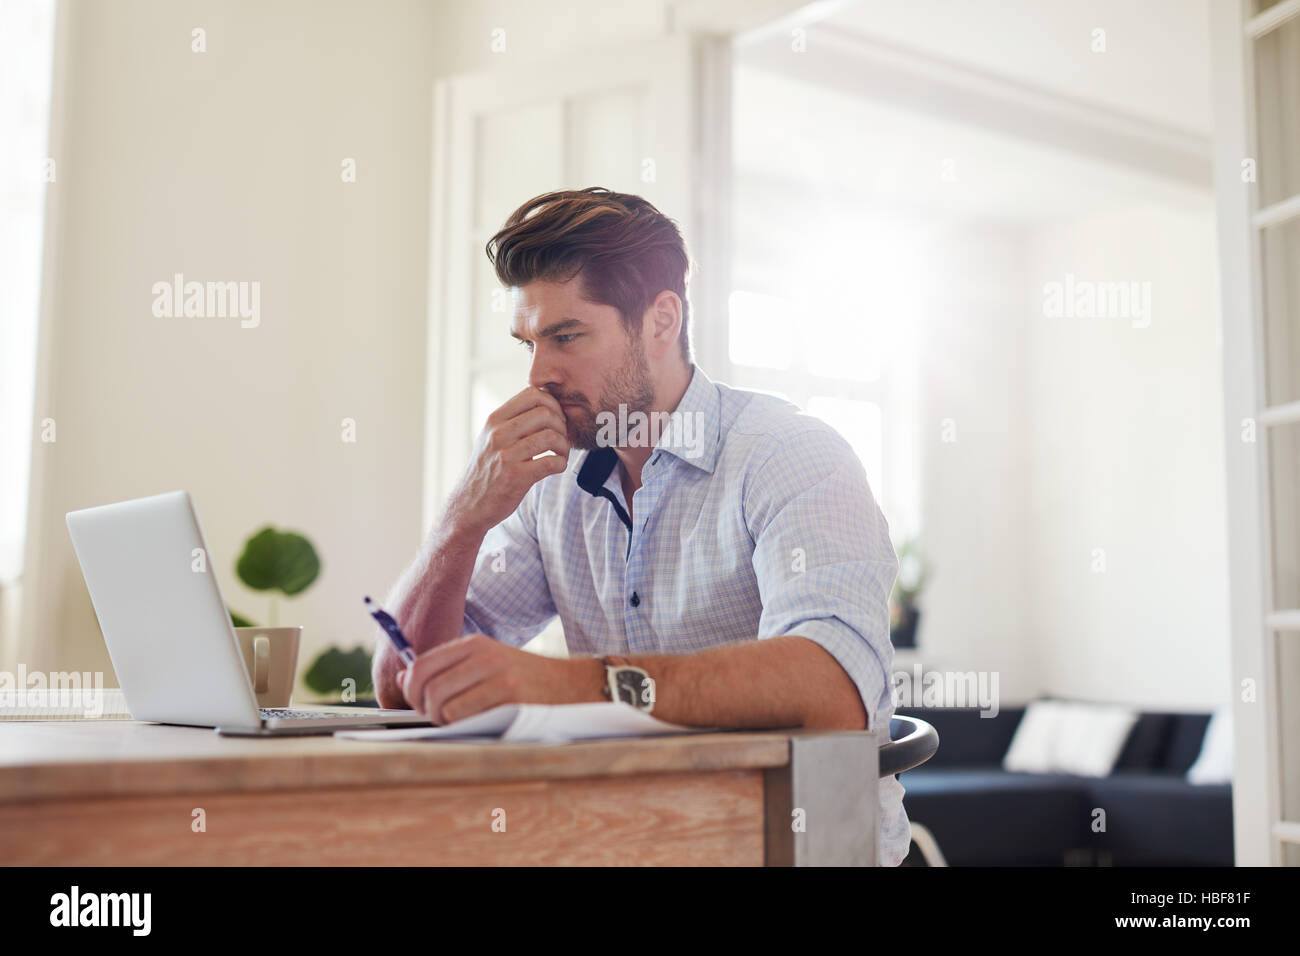 Side view shot of pensive young man sitting at home and working on laptop. Caucasian male working from home office. - Stock Image